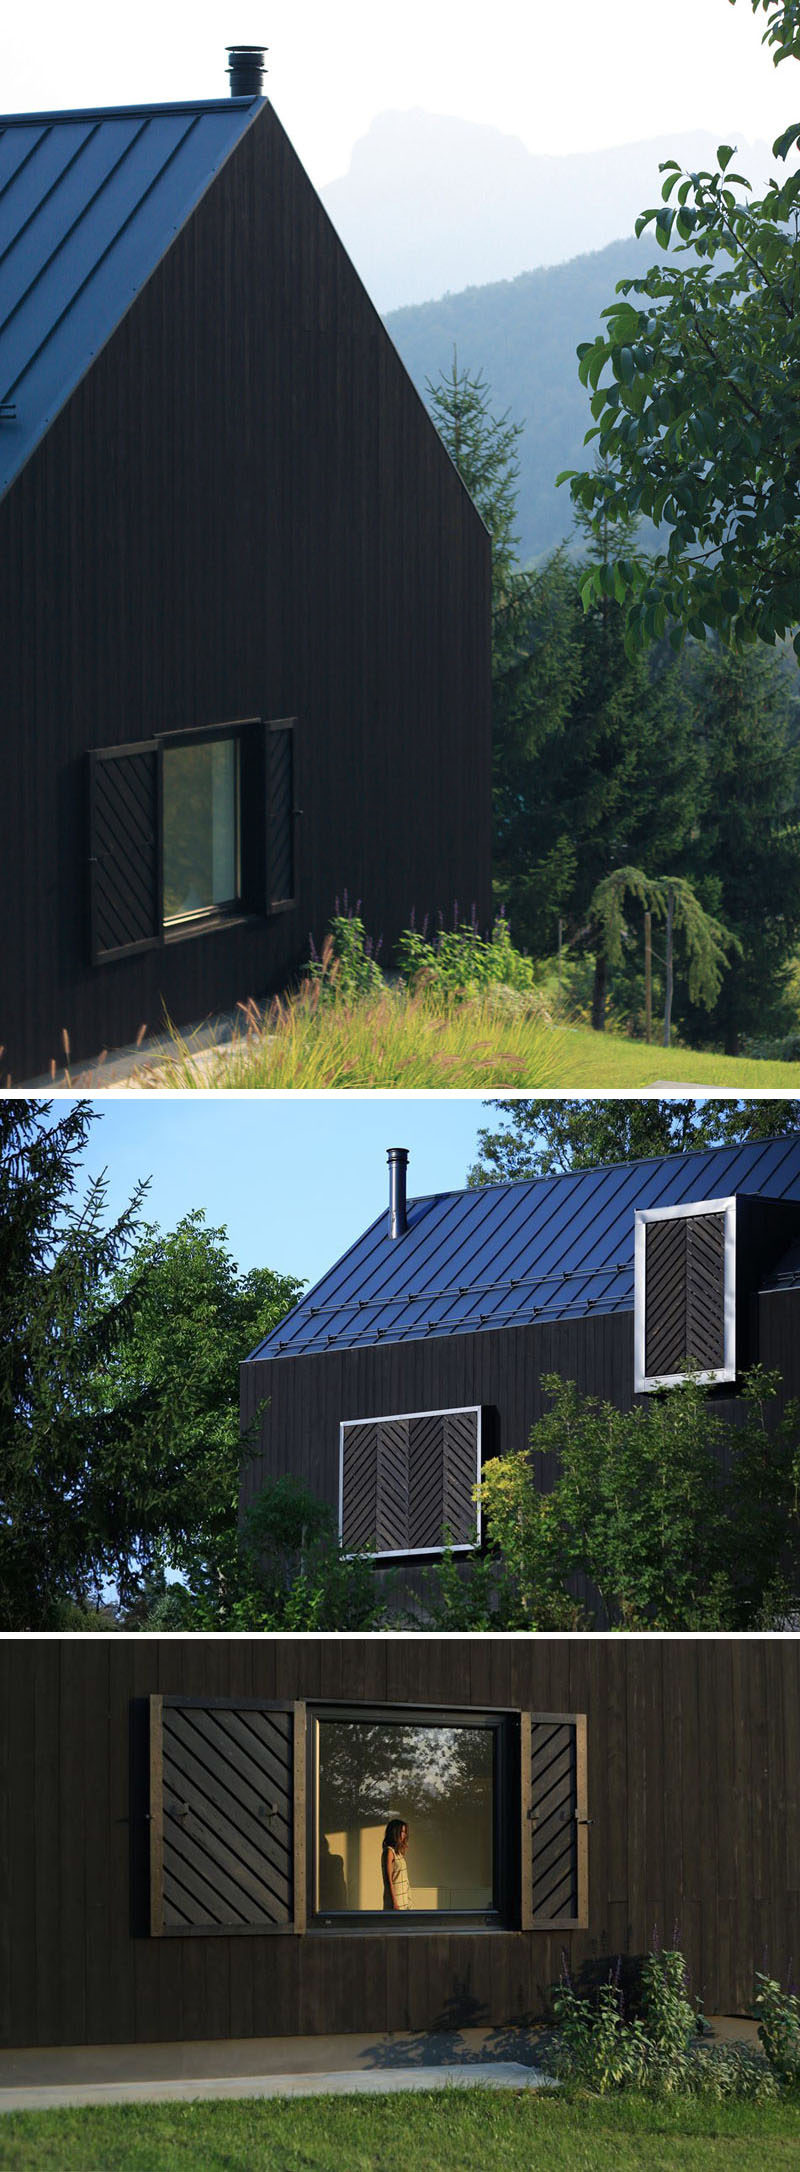 The design of this small modern black house includes a pitched roof. Blackened wooden (Shou Sugi Ban) was used as siding to cover the home, and to match the color of the house, black wooden shutters with a diagonal pattern have been attached to the house and can be used to cover the windows when needed.